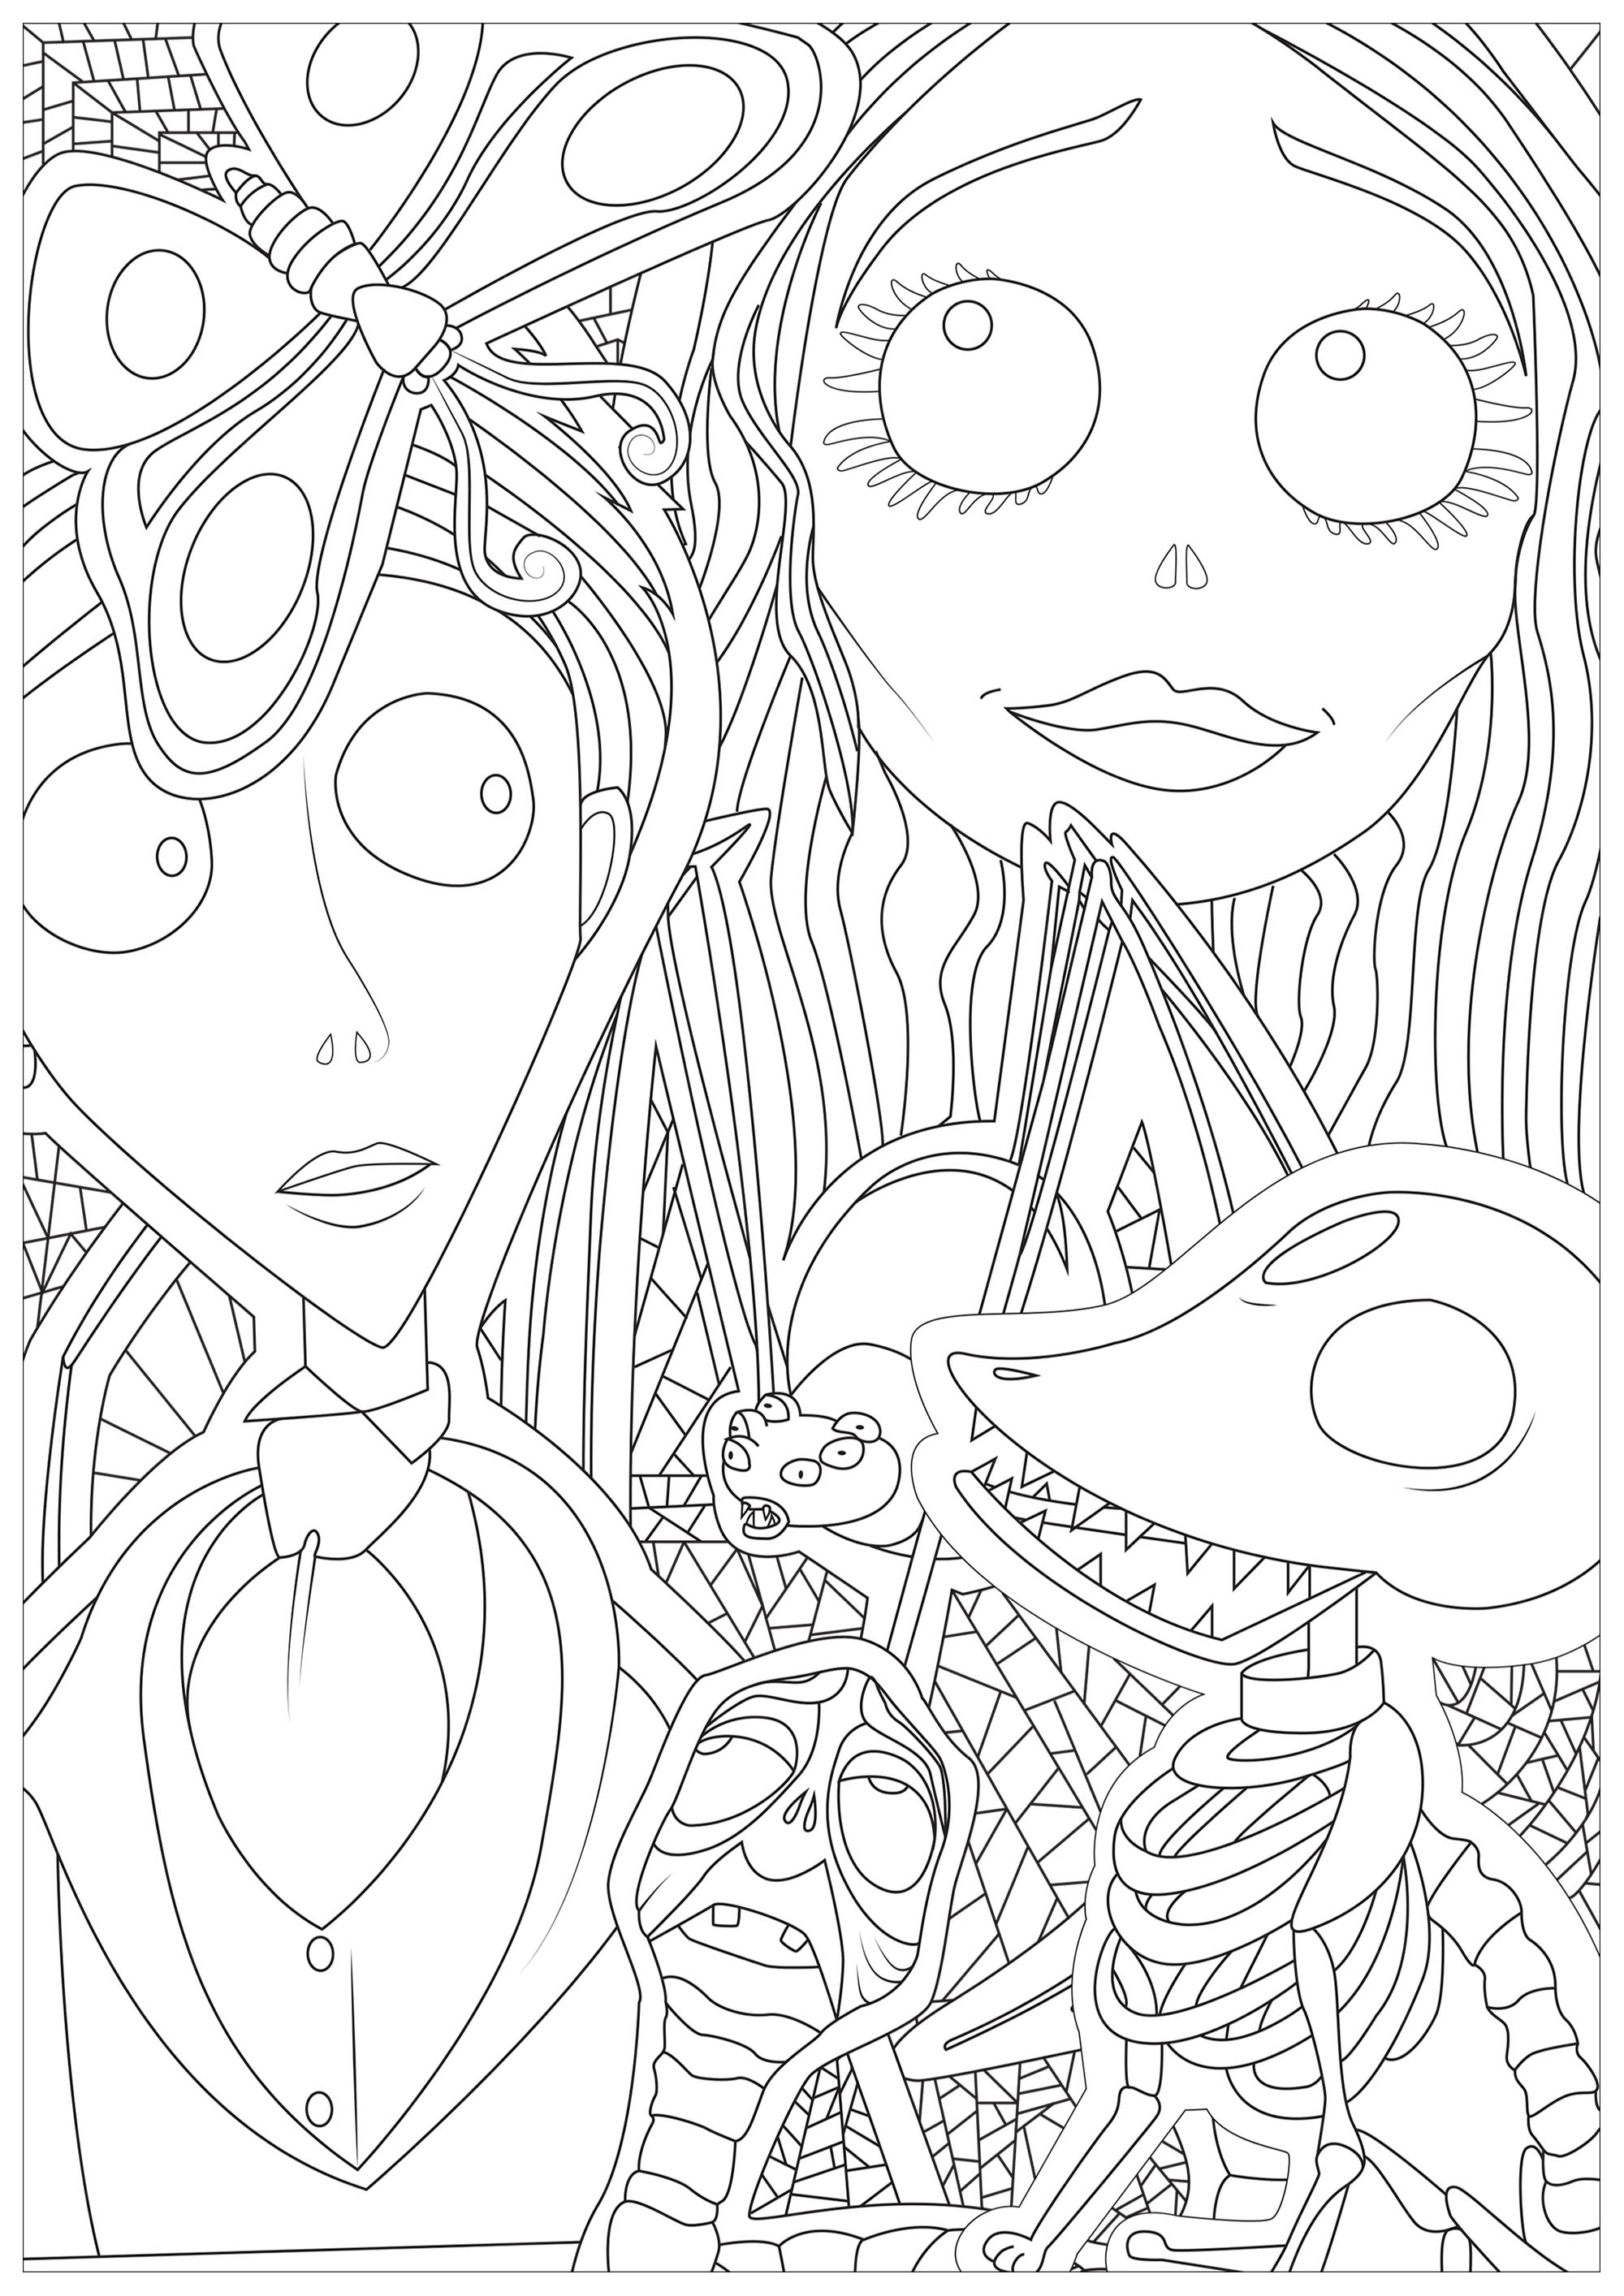 Coloring Page Corpse Bride Victor And Victoria From Tim Burtons 2005